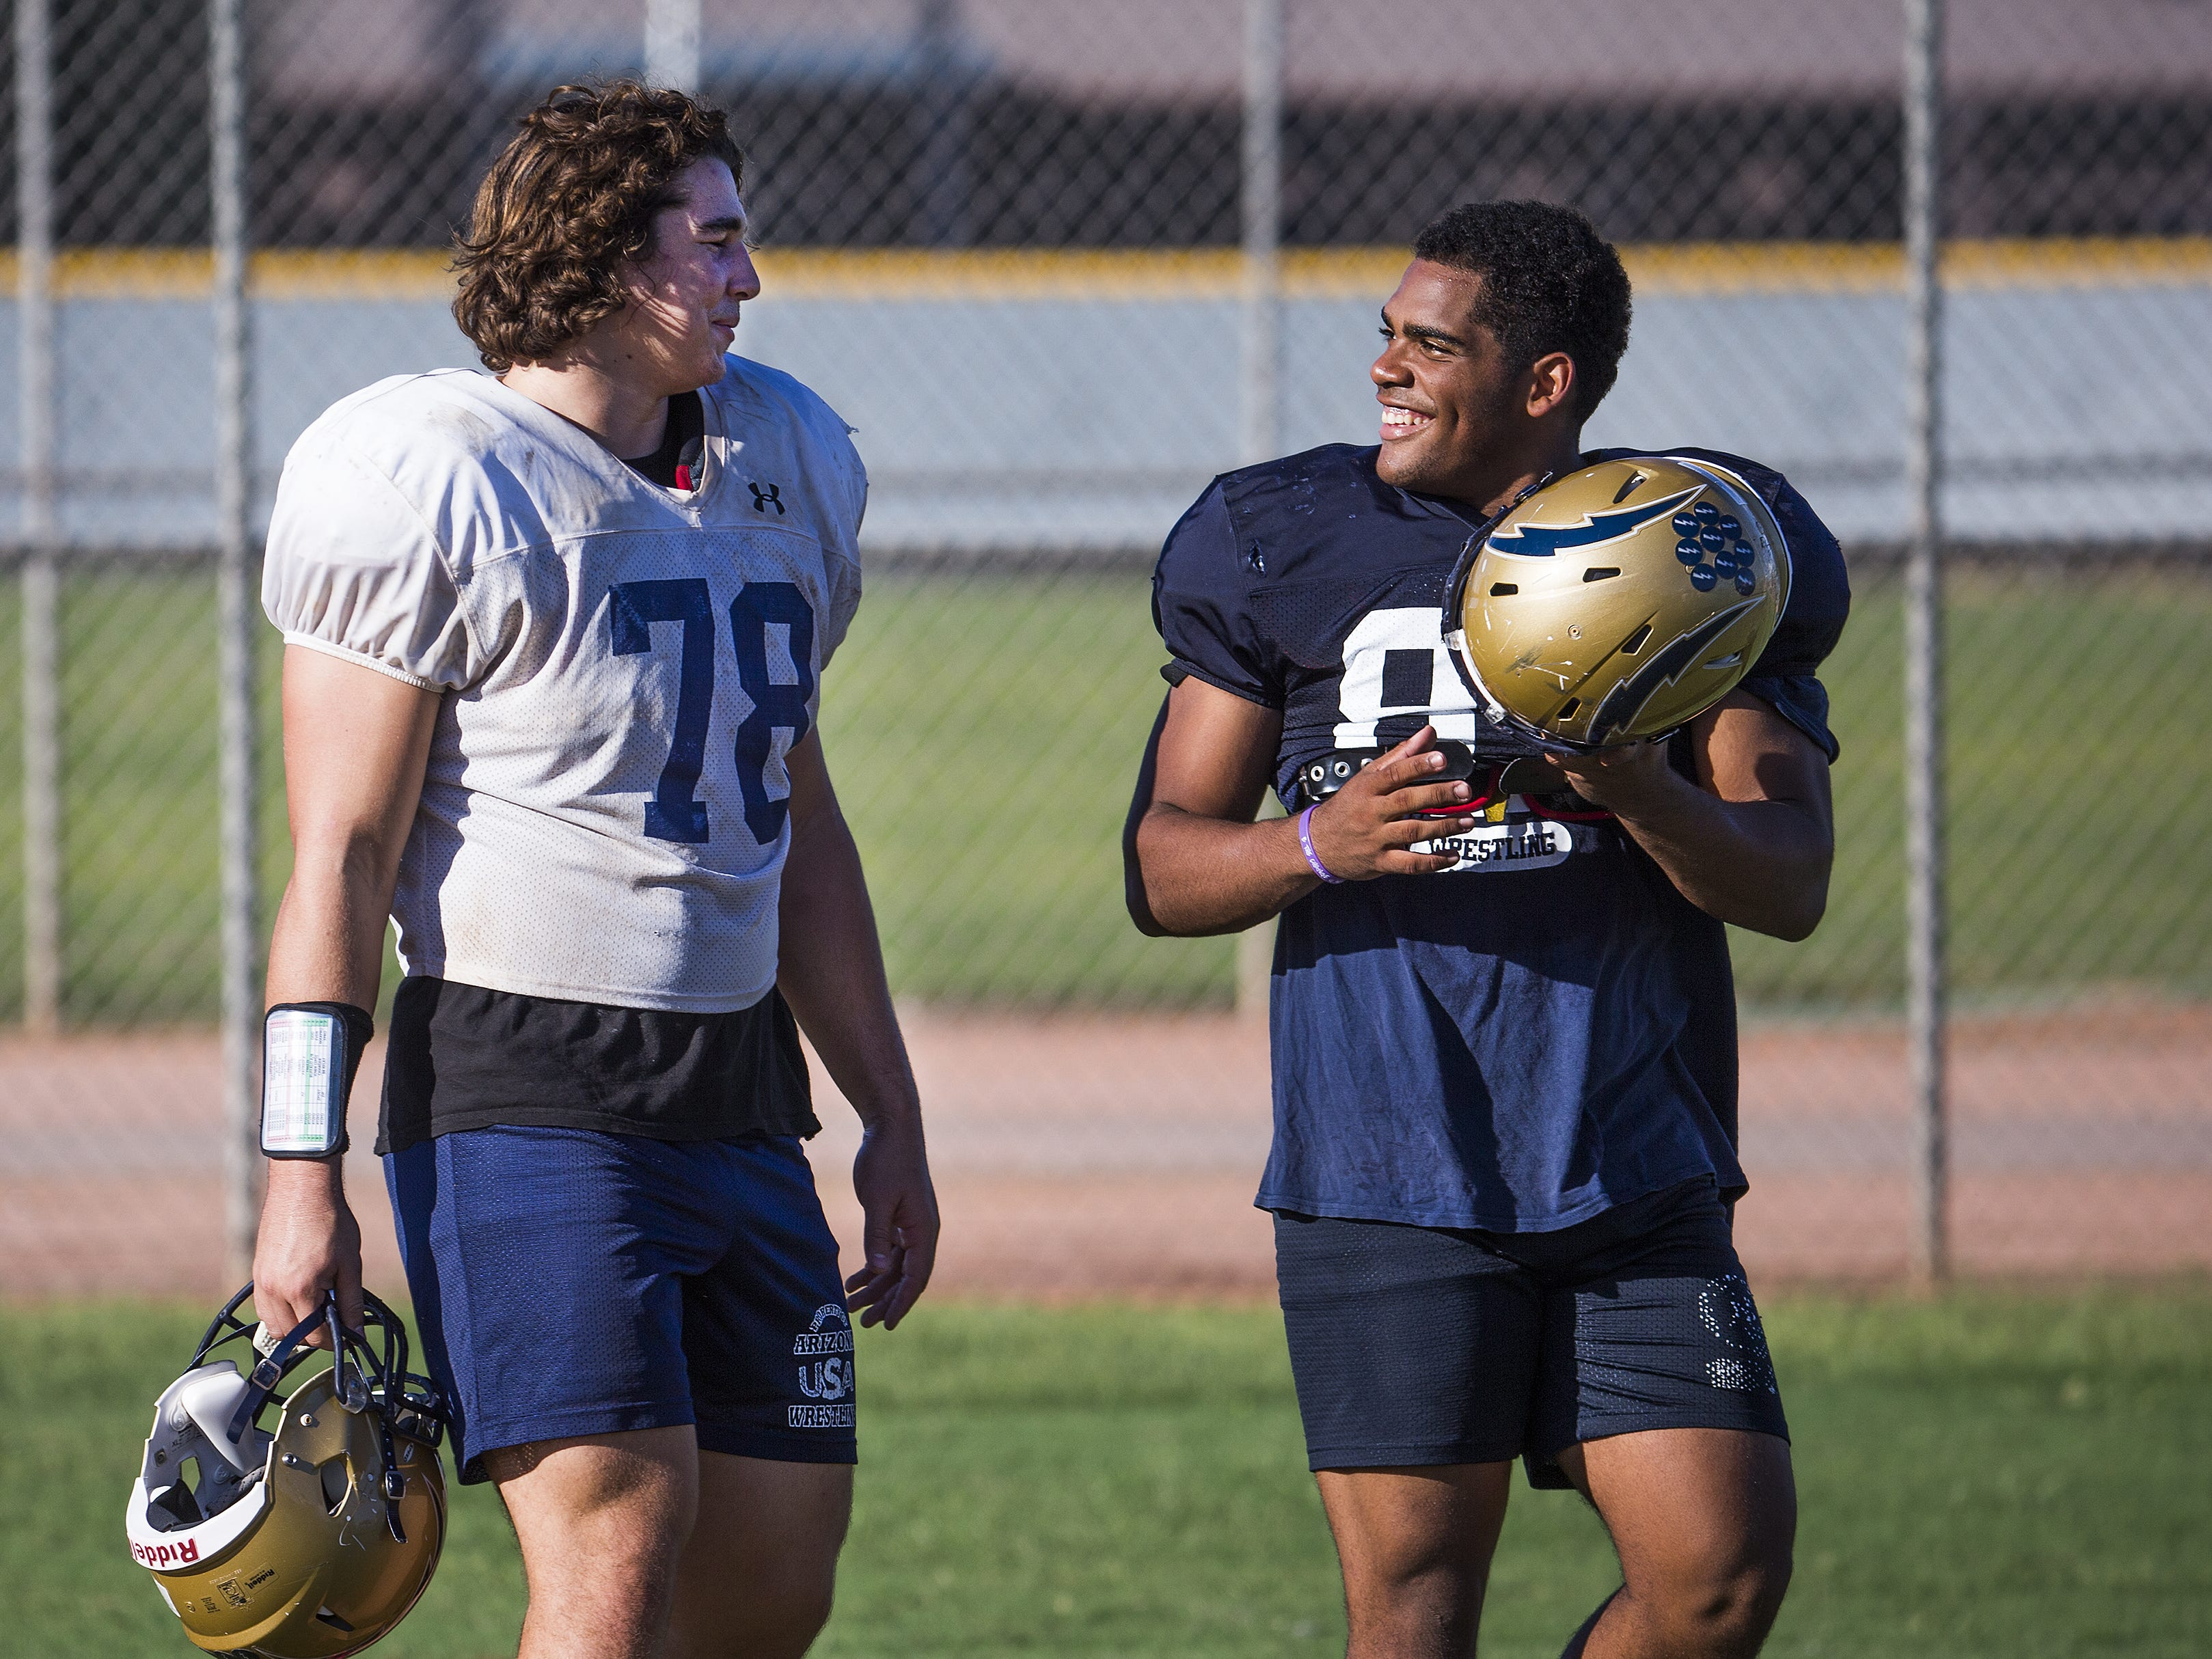 Desert Vista High School defensive linemen Brett Johnson, left, and Sebasthian Mingot talk during practice at the school, Wednesday, October 3, 2018.